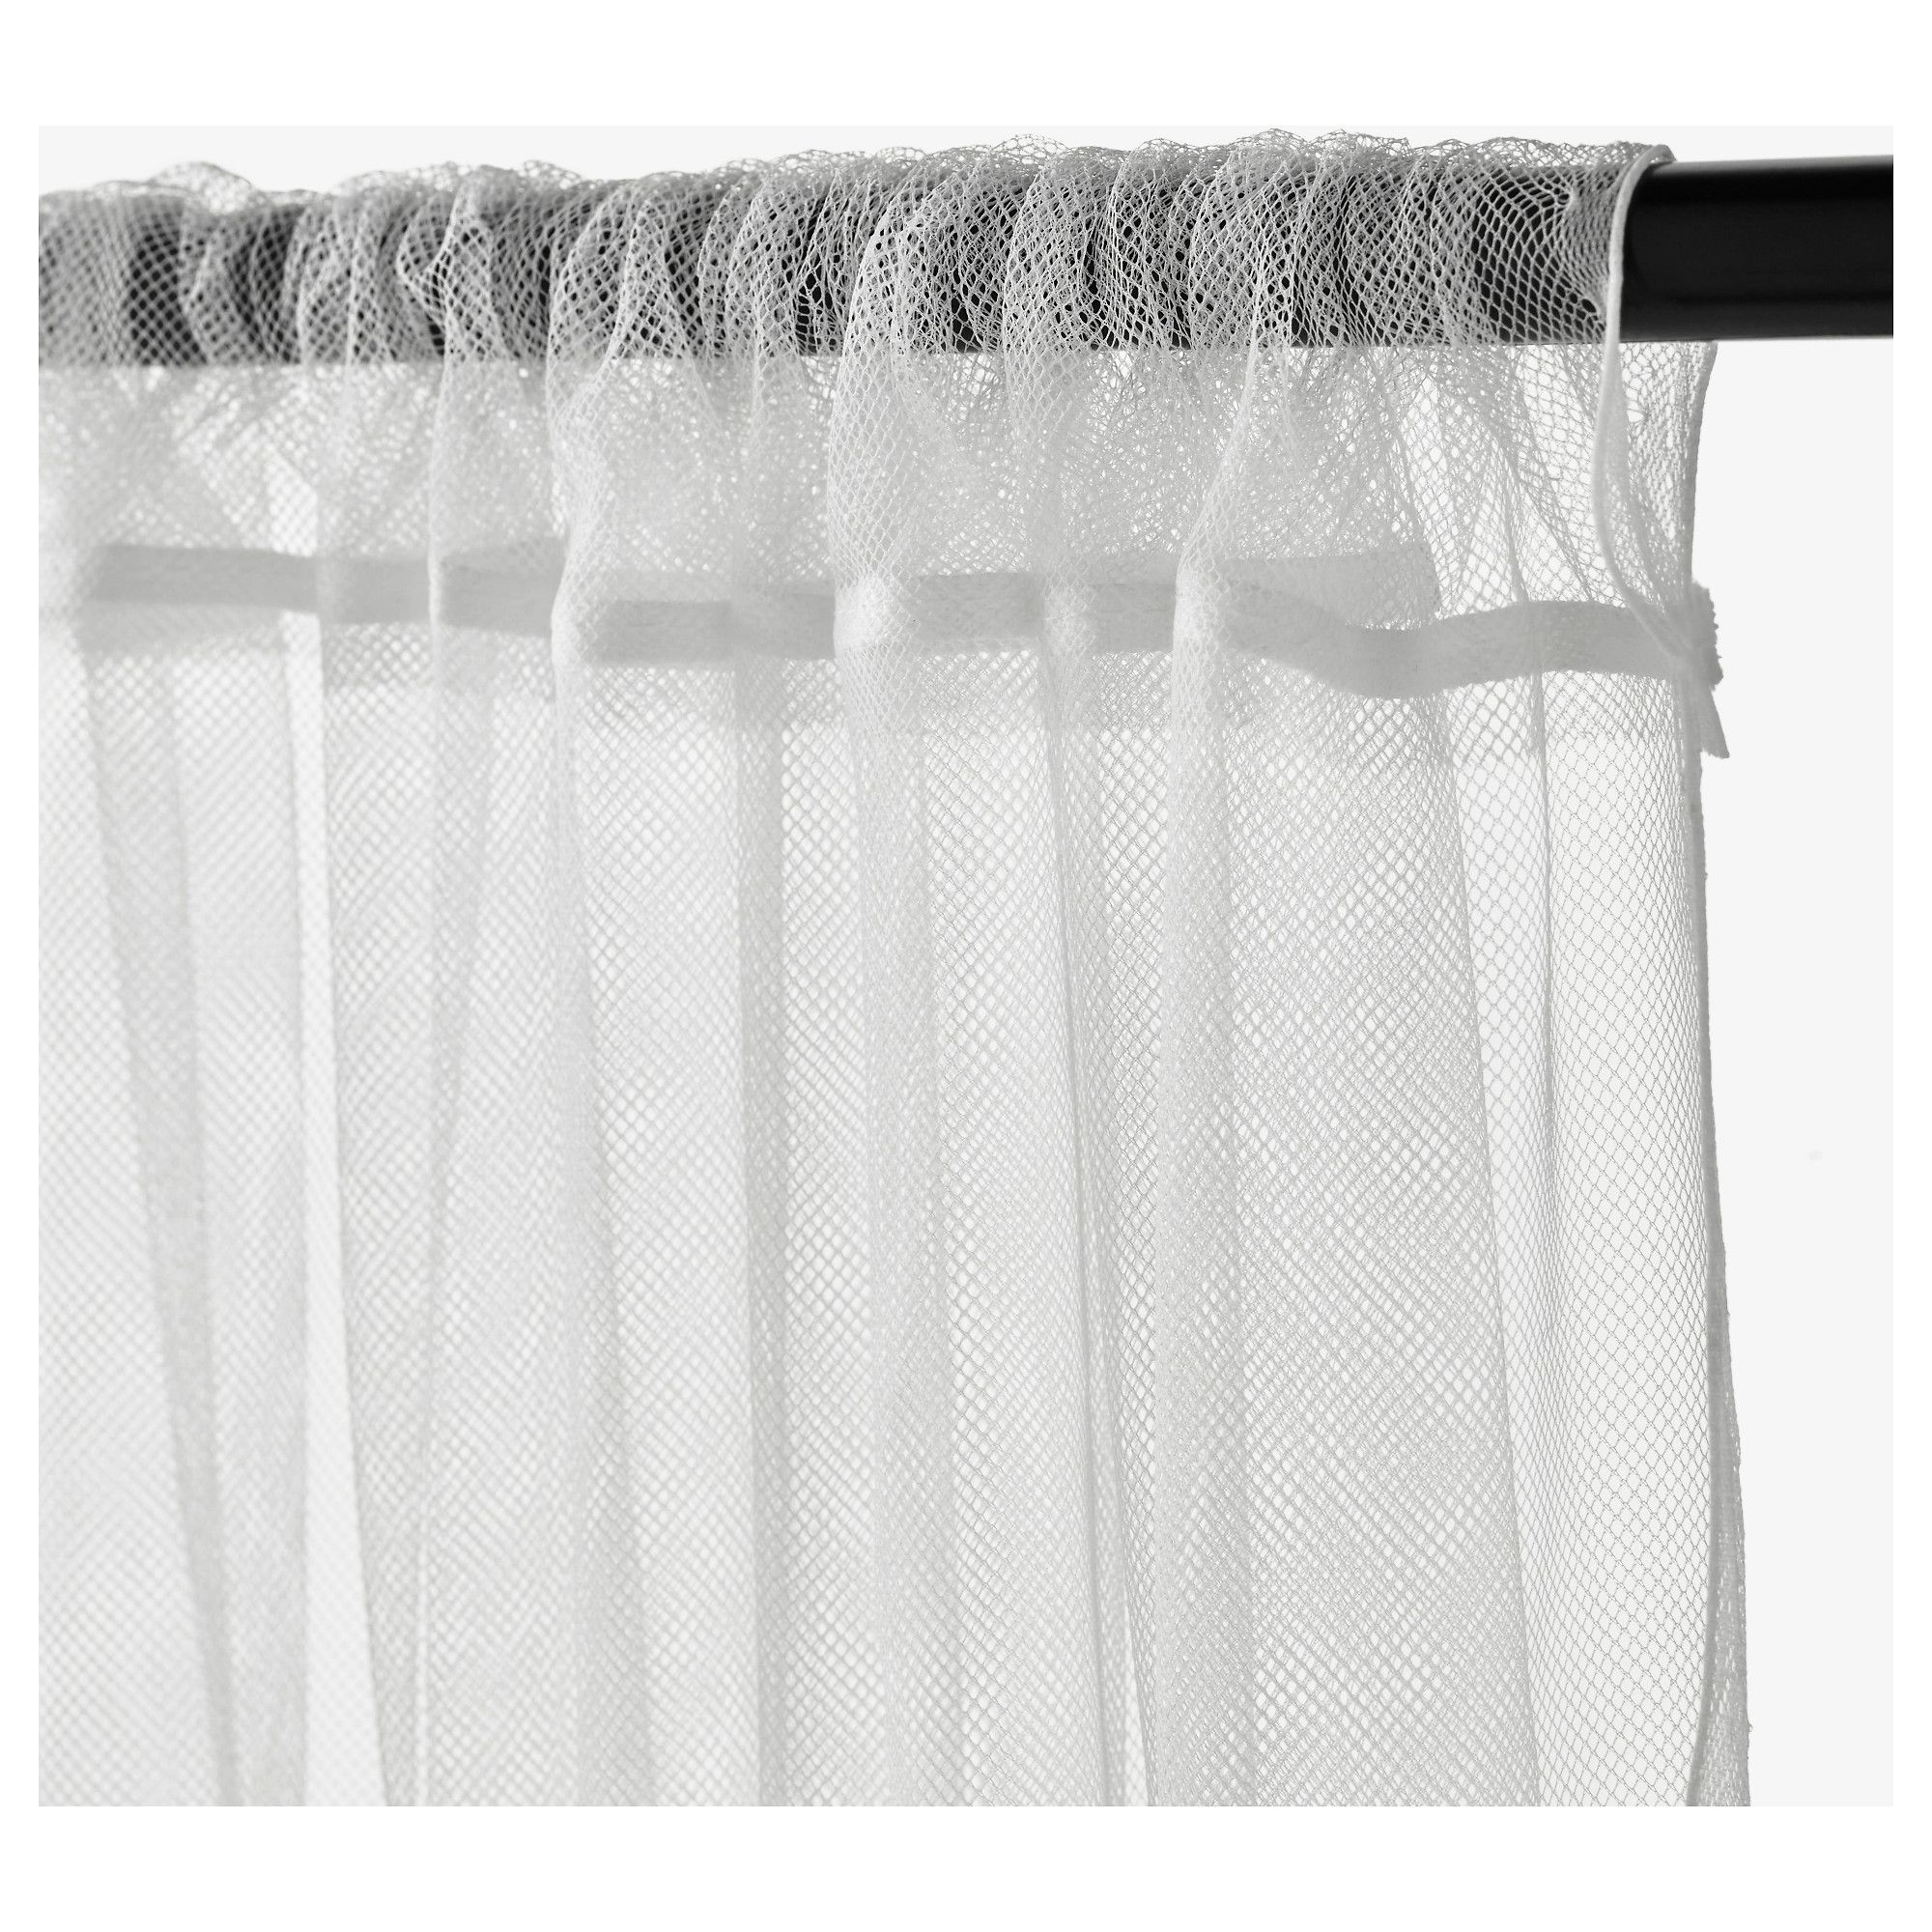 ikea lill lace curtains 1 pair the lace curtains let the daylight through but provide privacy so they are perfect to use in a layered window solution